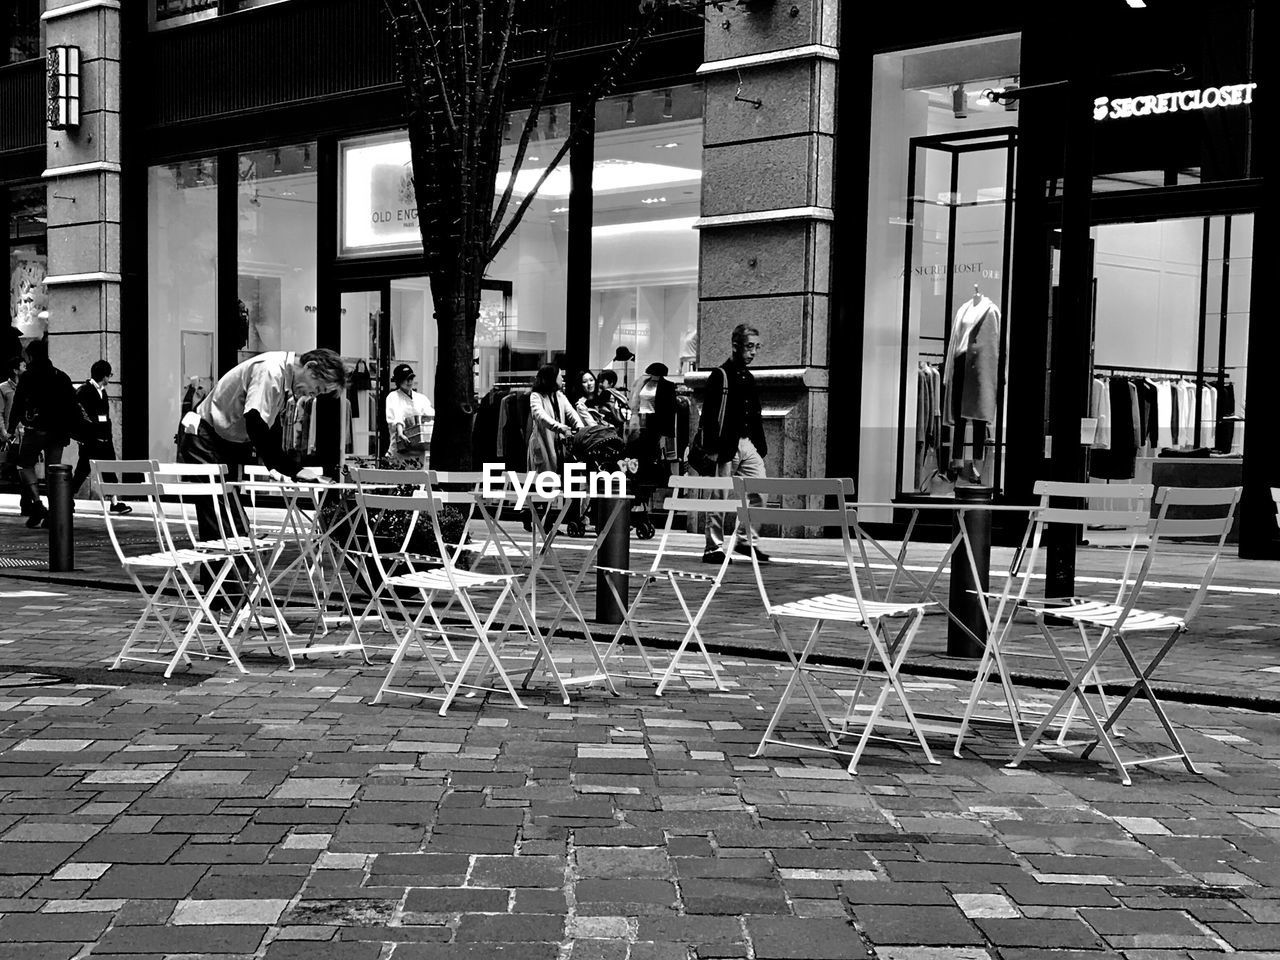 PEOPLE SITTING ON CHAIRS AT CAFE